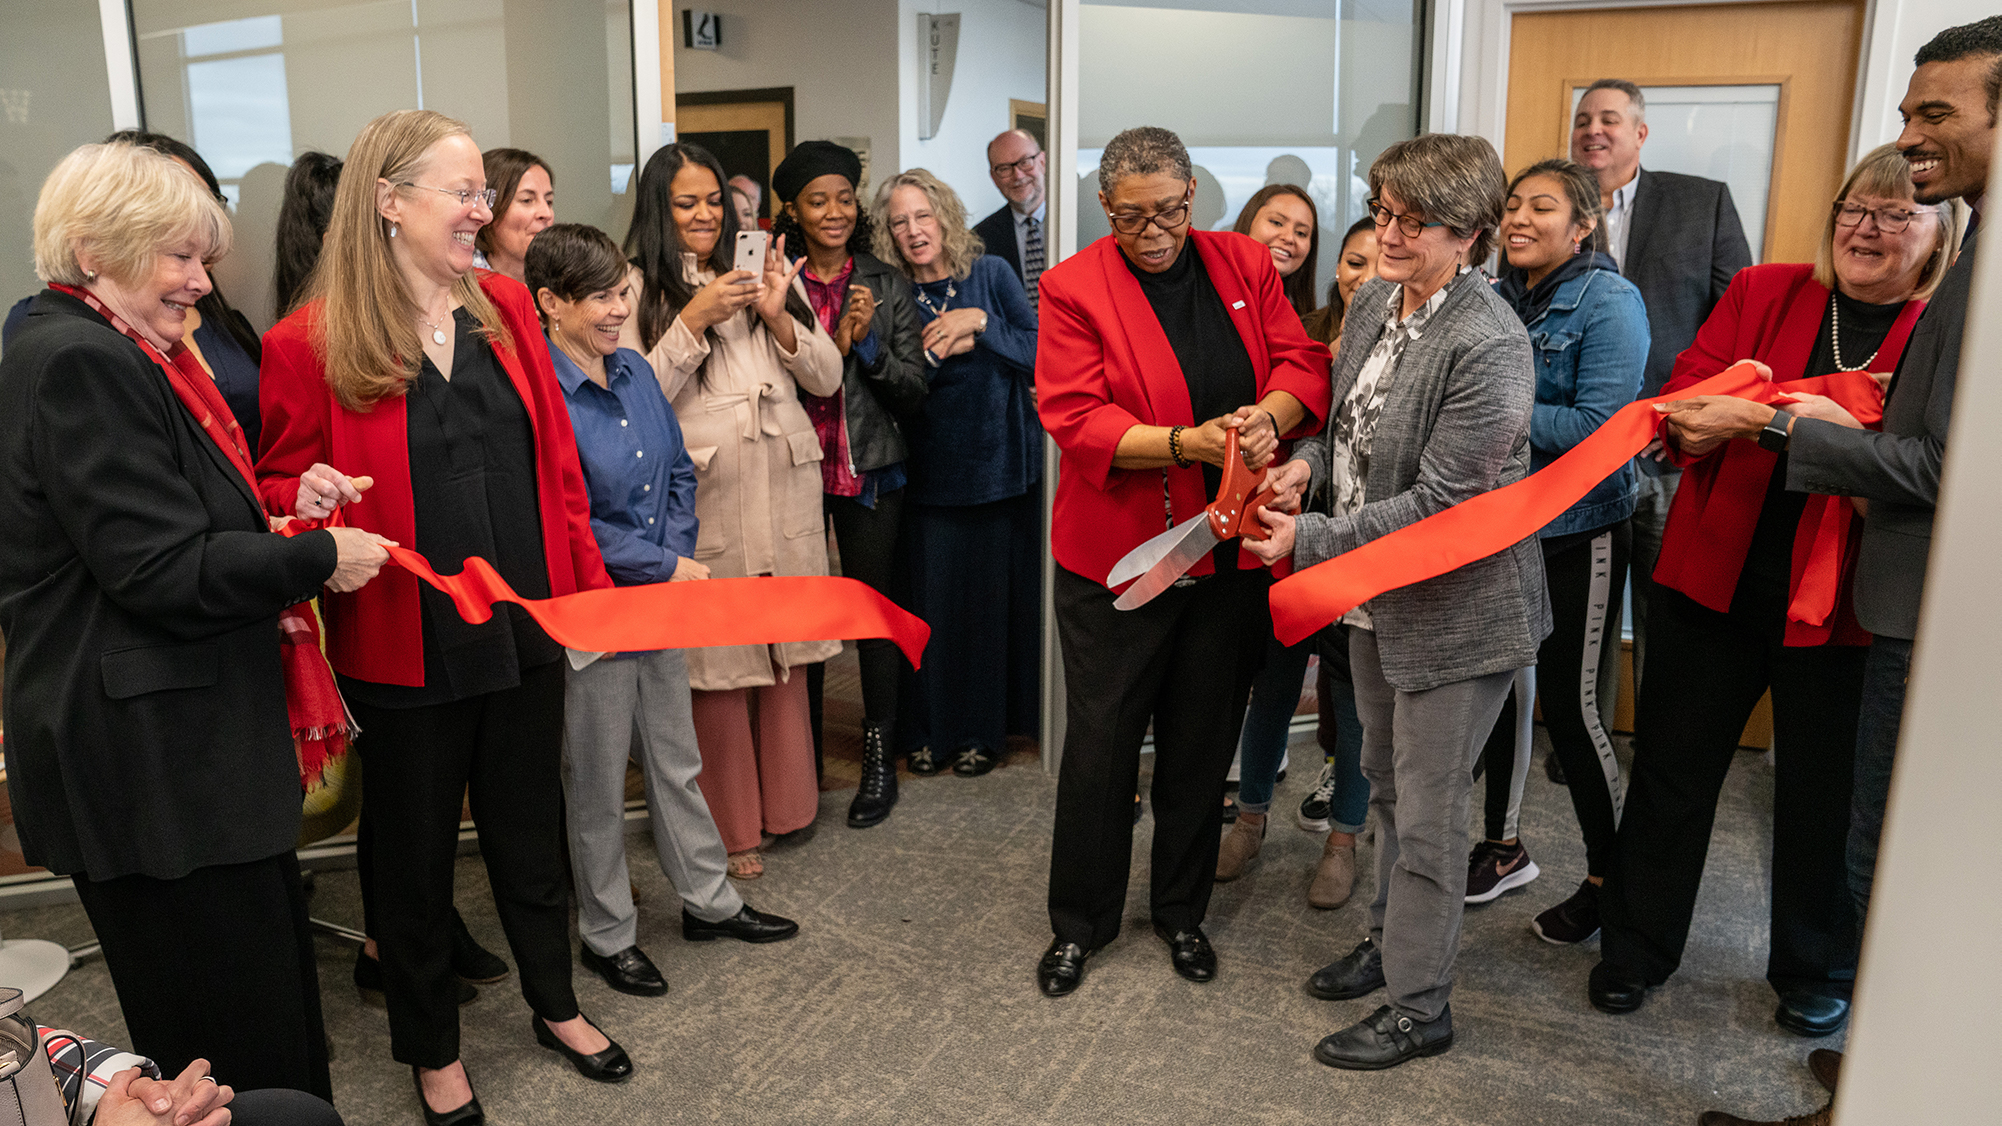 Group gathered cutting ribbon to new Women's Resource Center